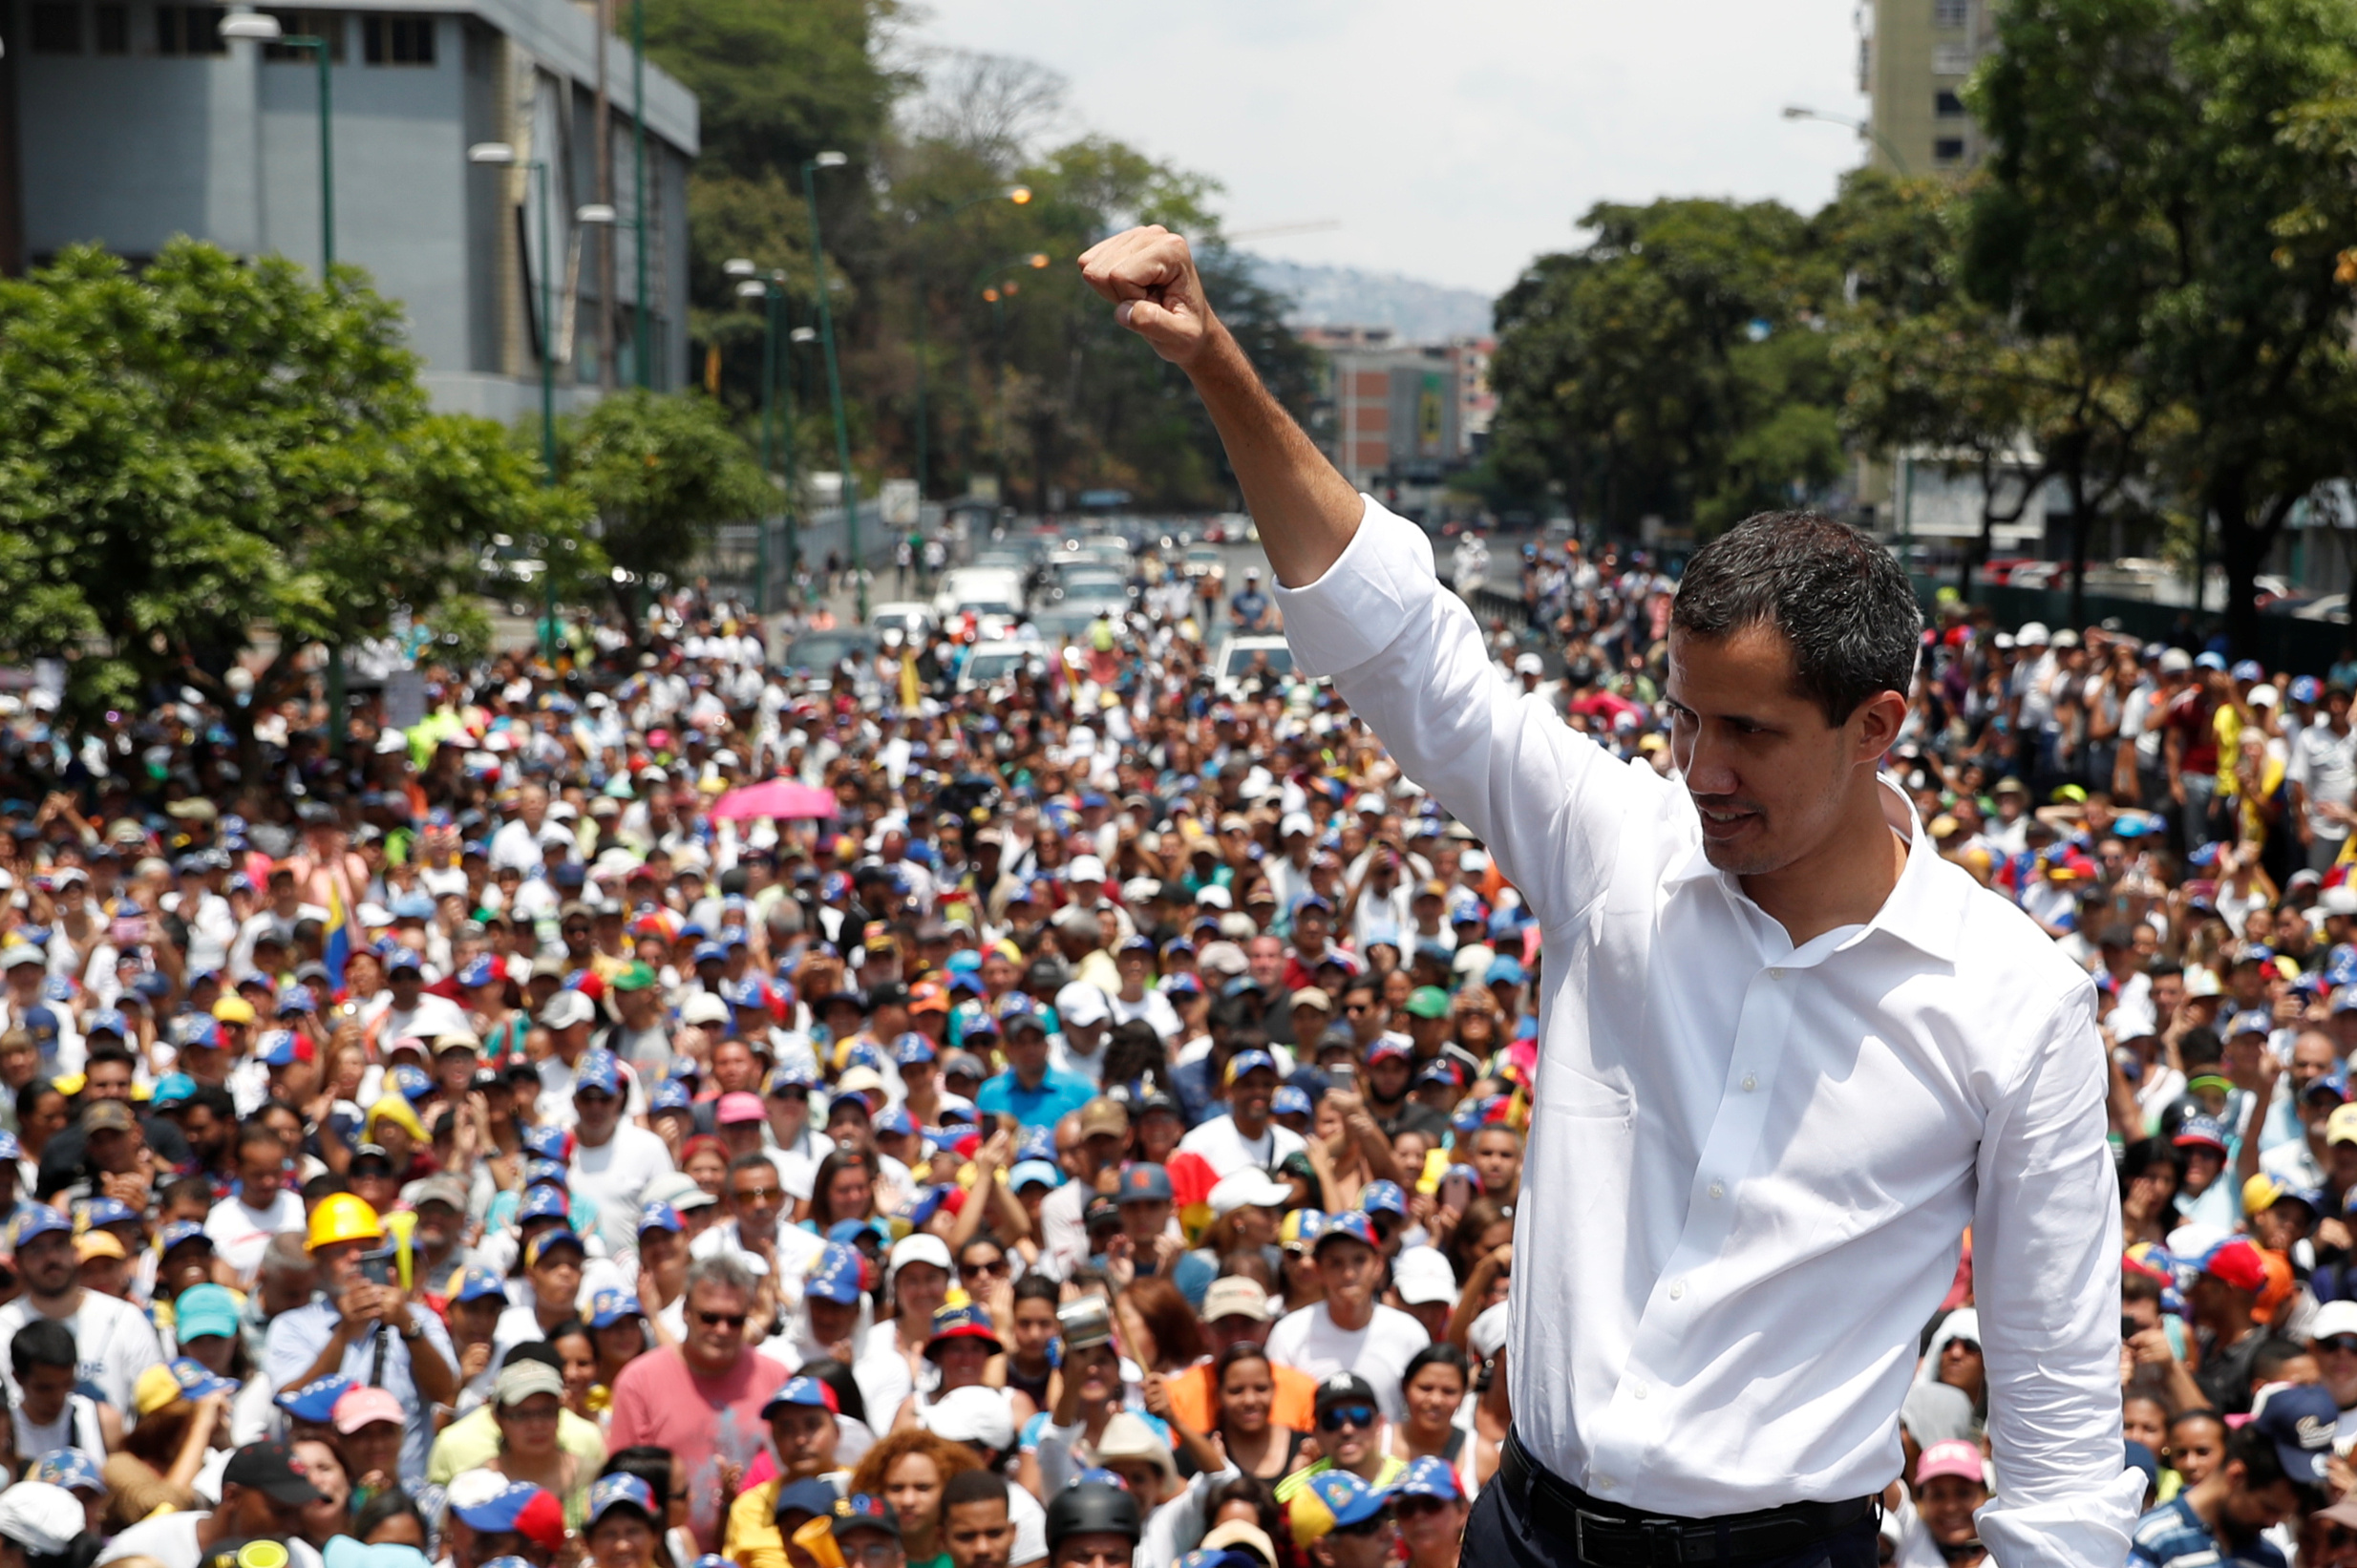 Venezuelan opposition leader Juan Guaido, who many nations have recognised as the country's rightful interim ruler, gestures as he speaks to supporters during a rally against the government of Venezuela's President Nicolas Maduro and to commemorate May Day in Caracas Venezuela, May 1, 2019. REUTERS/Carlos Garcia Rawlins